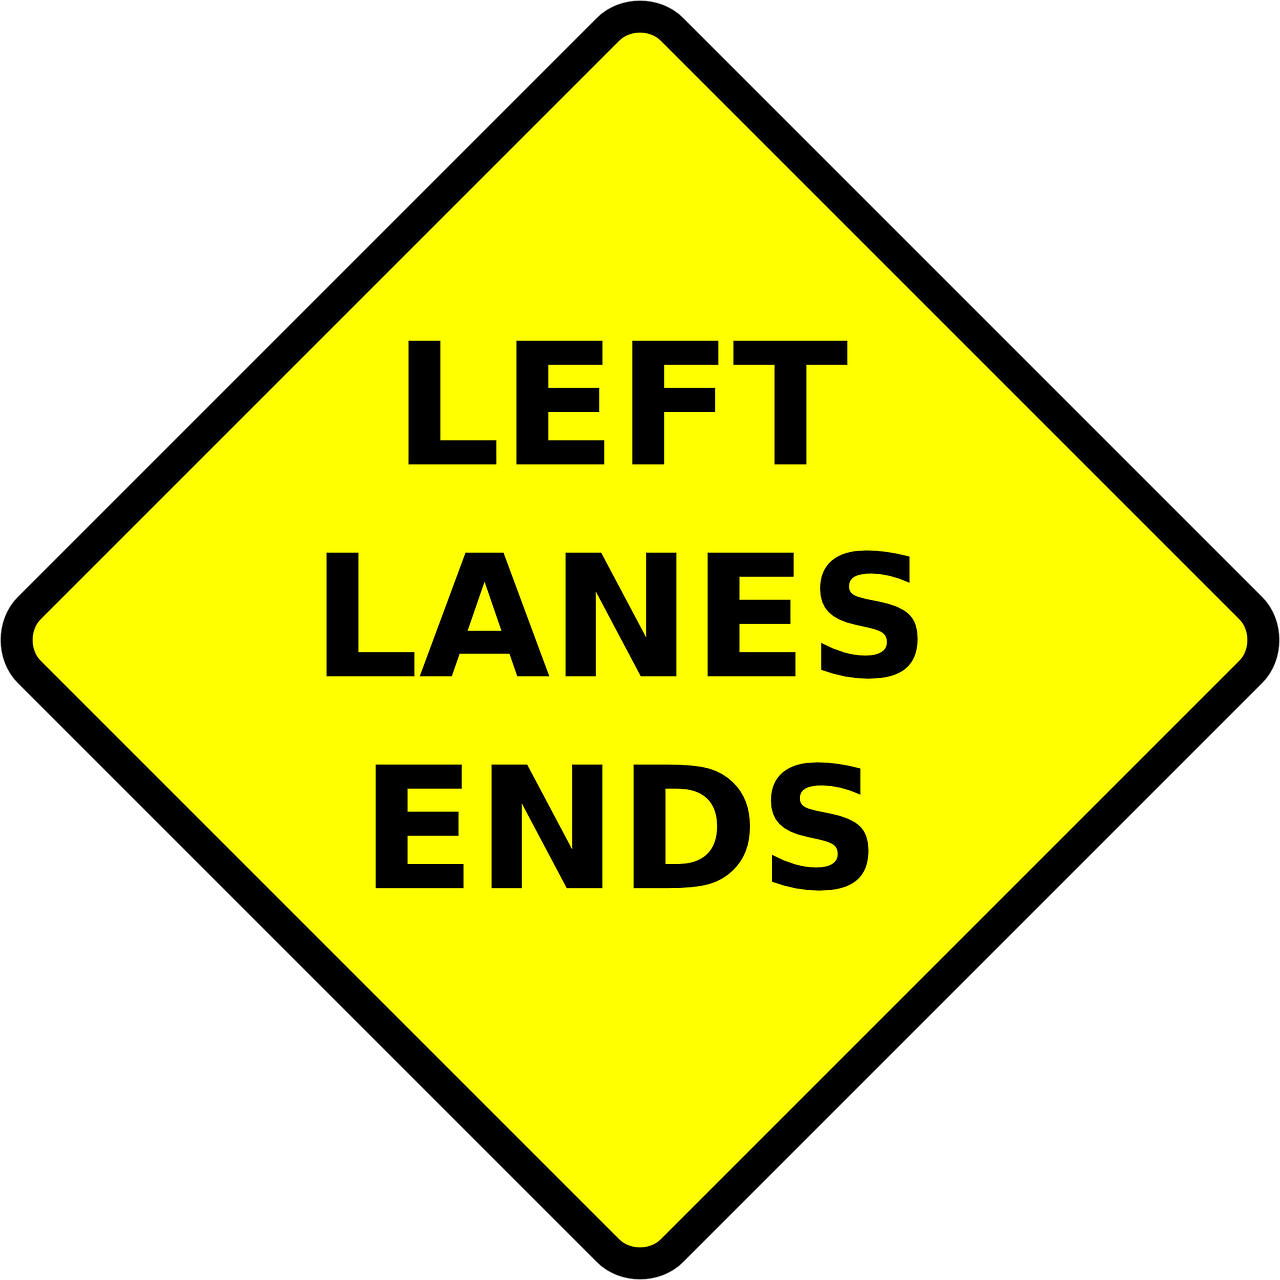 left lane ends free photo